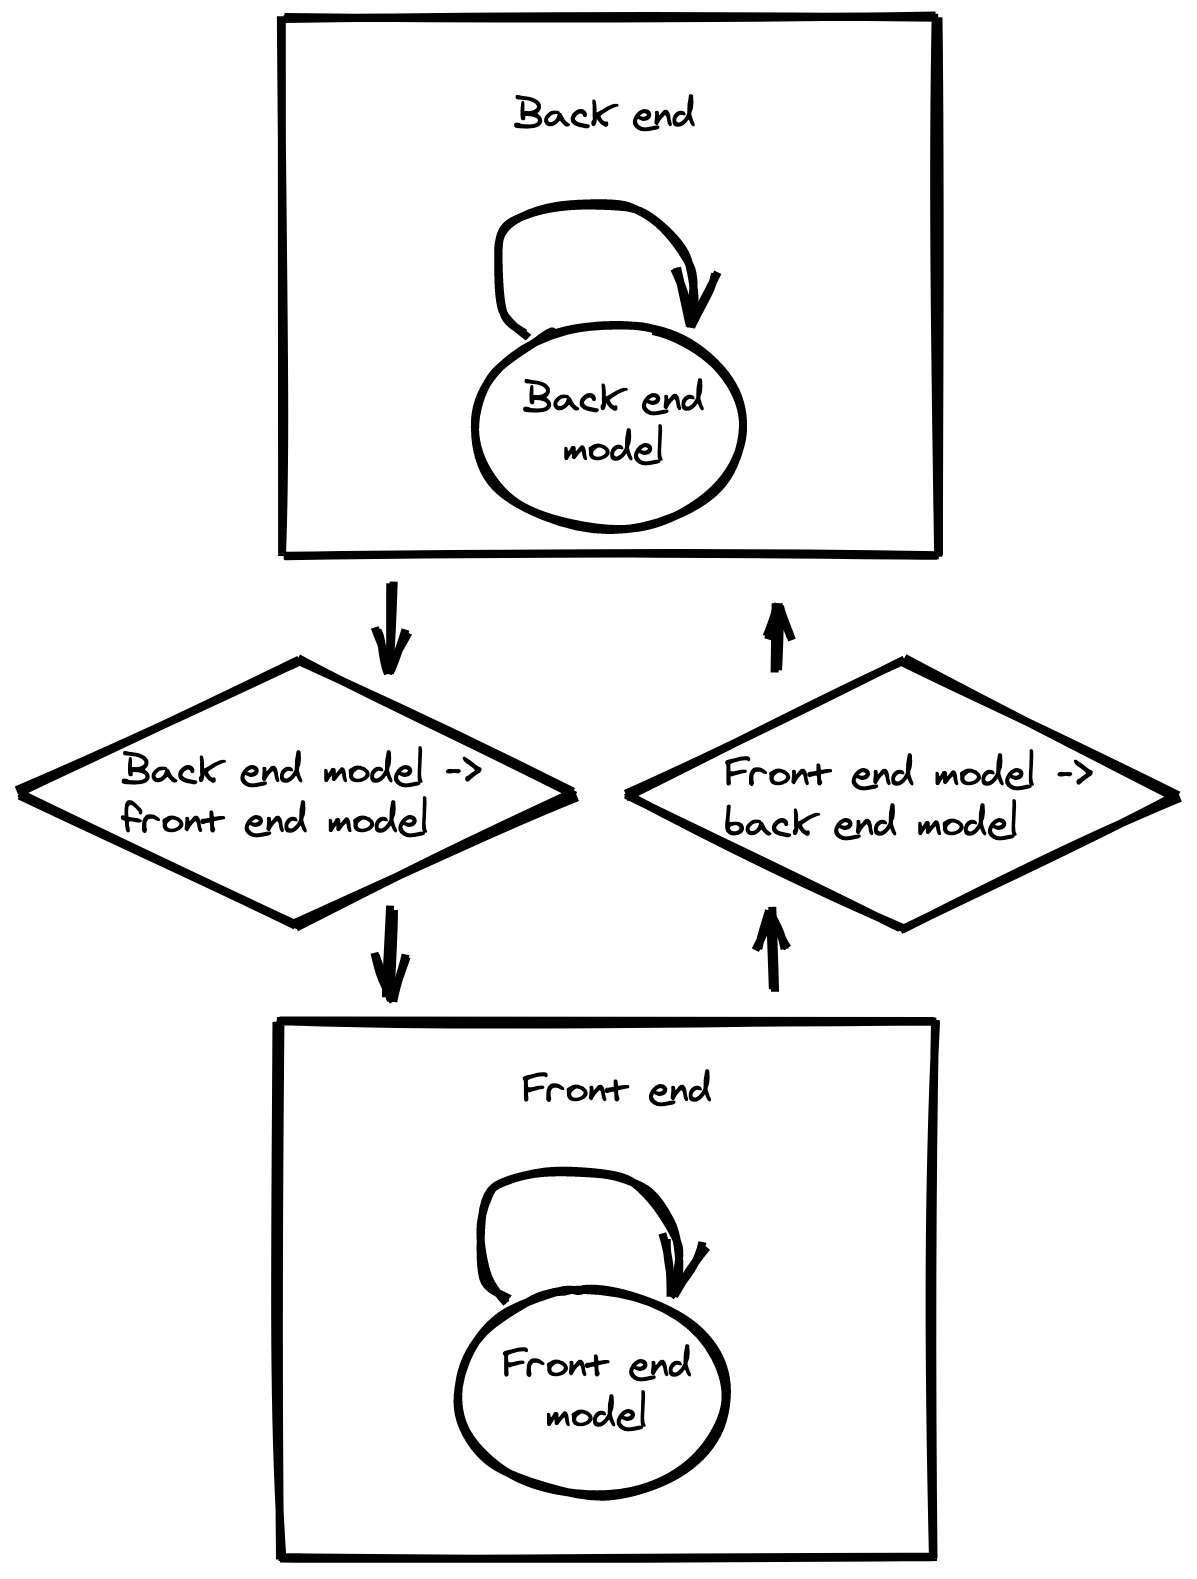 A diagram of backend and front end model integration